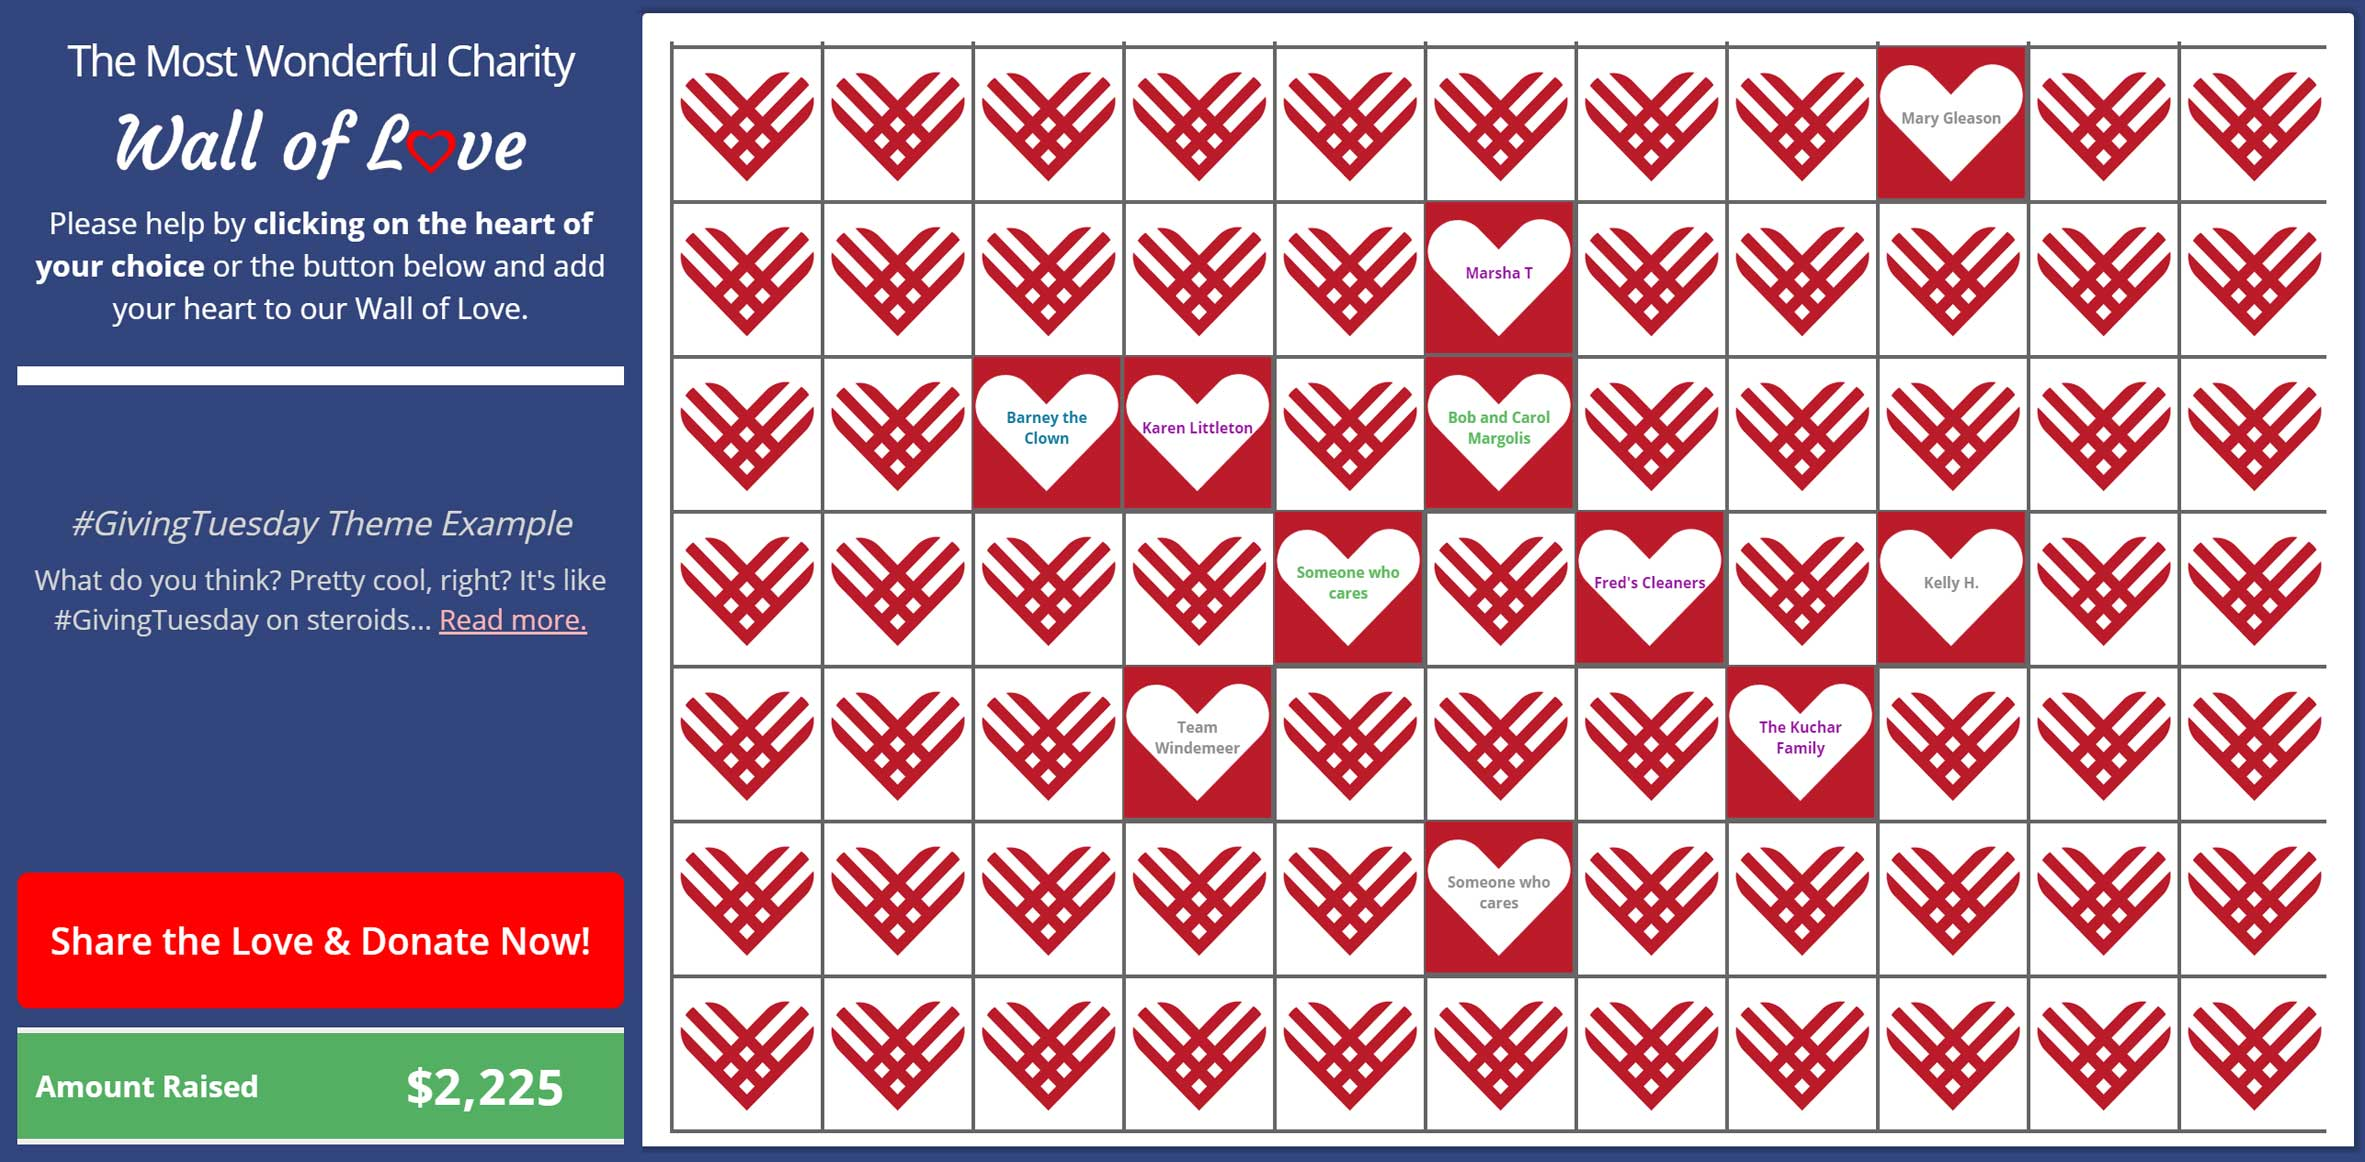 Wall of Love #GivingTuesday